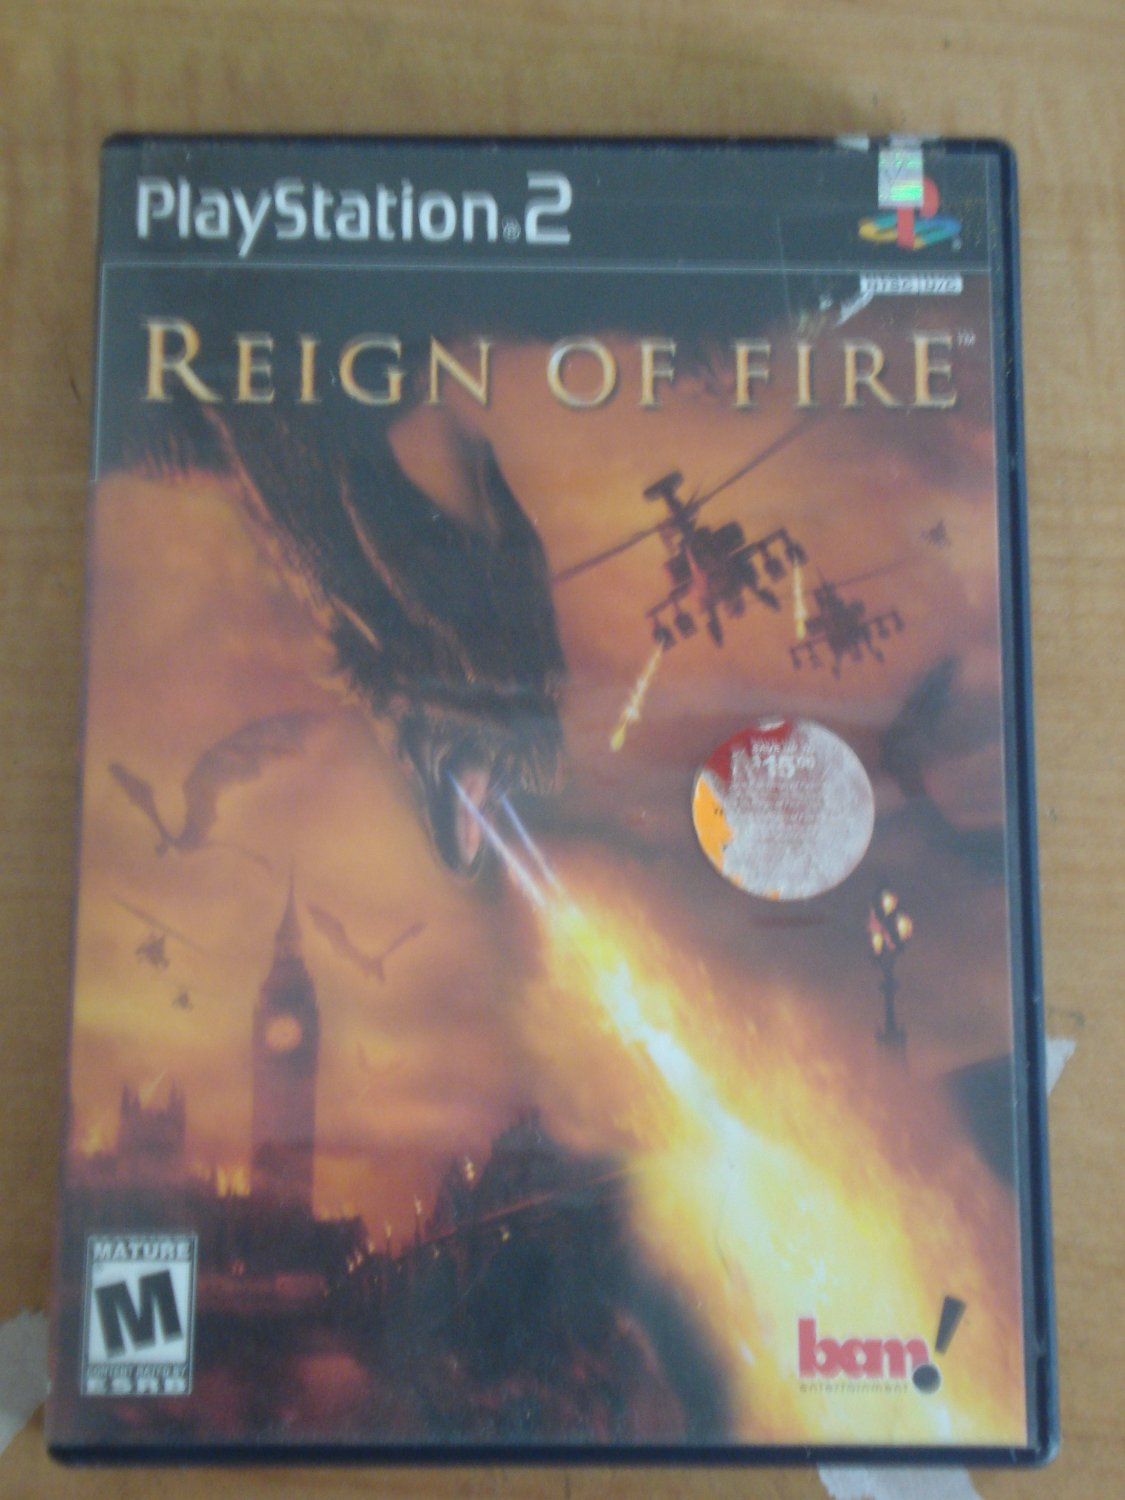 Reing of Fire video game